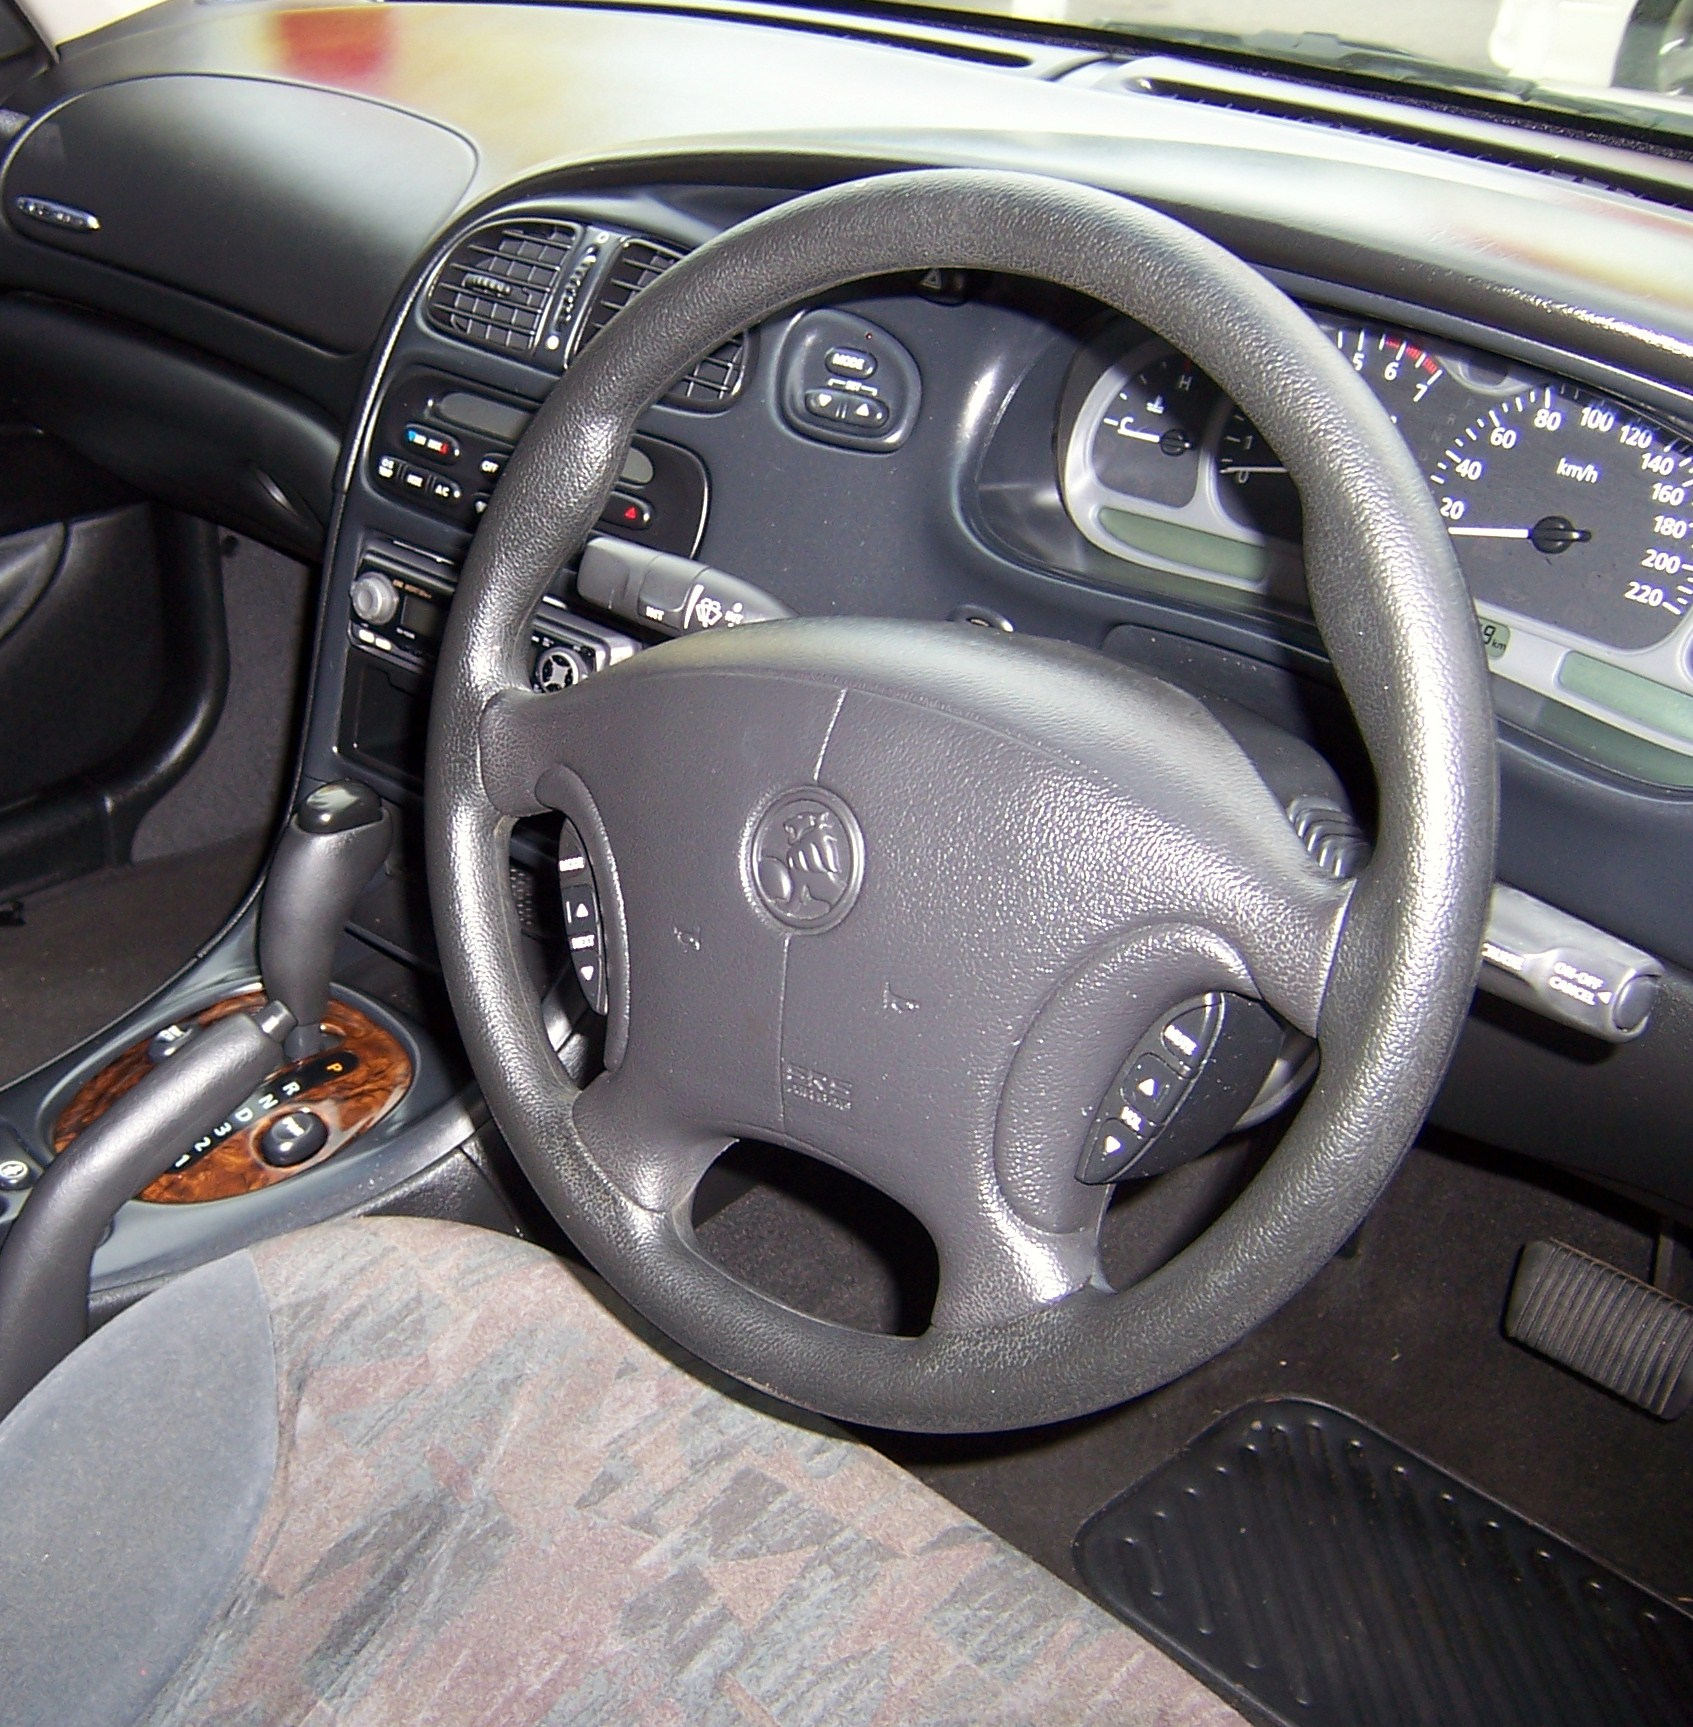 2005 Aston Martin Db9 Interior: Pictures, Information And